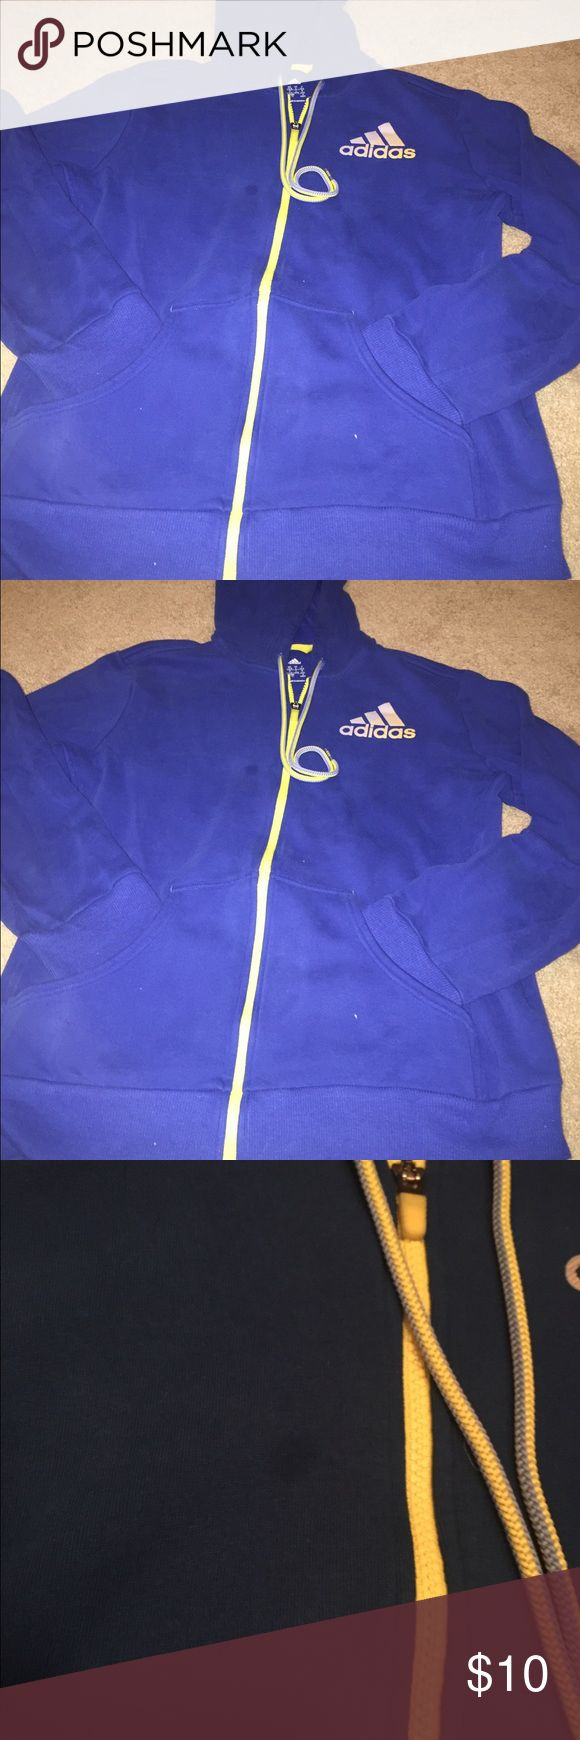 Adidas zip up hoodie, L Women's zip up hoodie with (my fave, thumb holes!). Royal blue with yellow accents.  Small spot (haven't tried to get it out) on the front, shown in photo.  Size L. Adidas Tops Sweatshirts & Hoodies